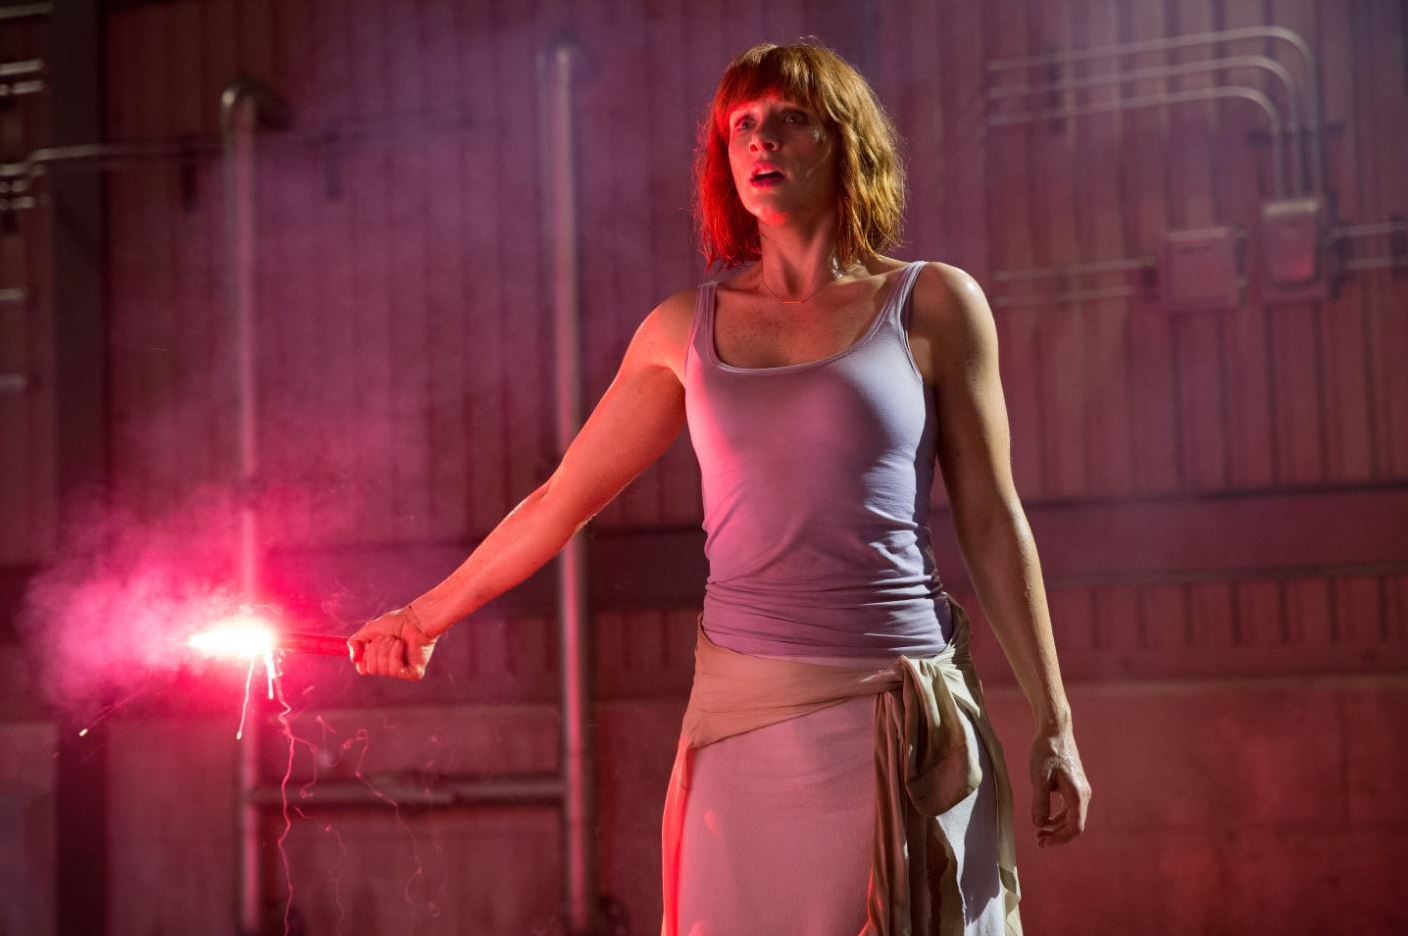 Claire Dearing (Bryce Dallas Howard) holding the red flare - Jurassic World Review